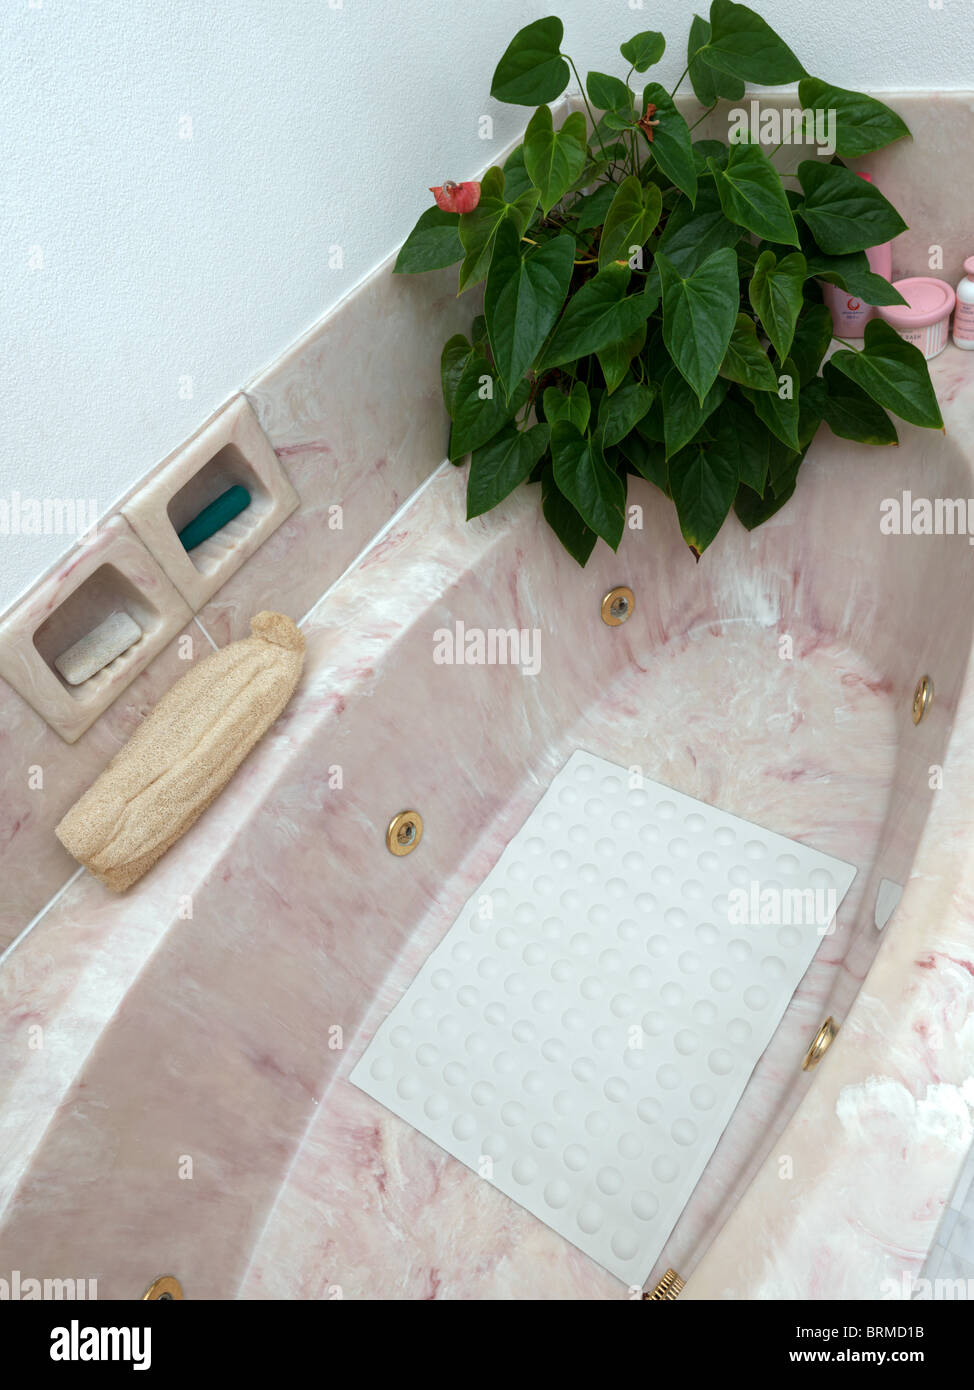 An Anti-Microbial Non Slip Bath and Shower Mat - Stock Image